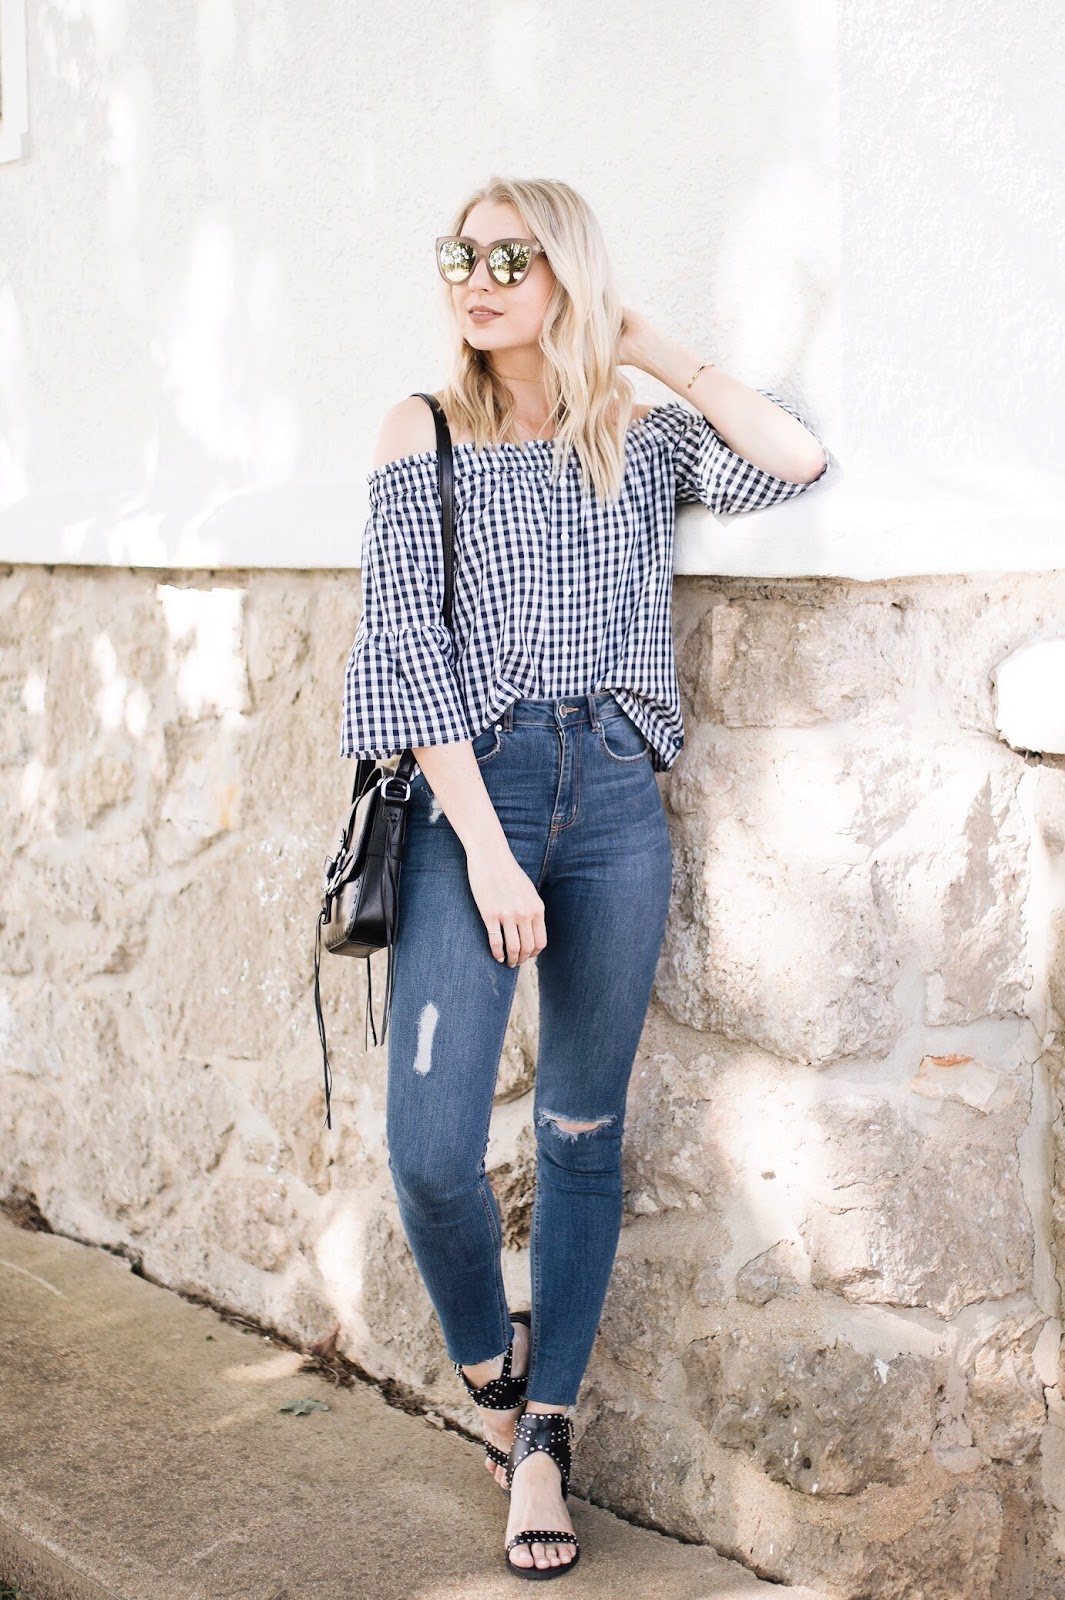 gingham top with skinny jeans